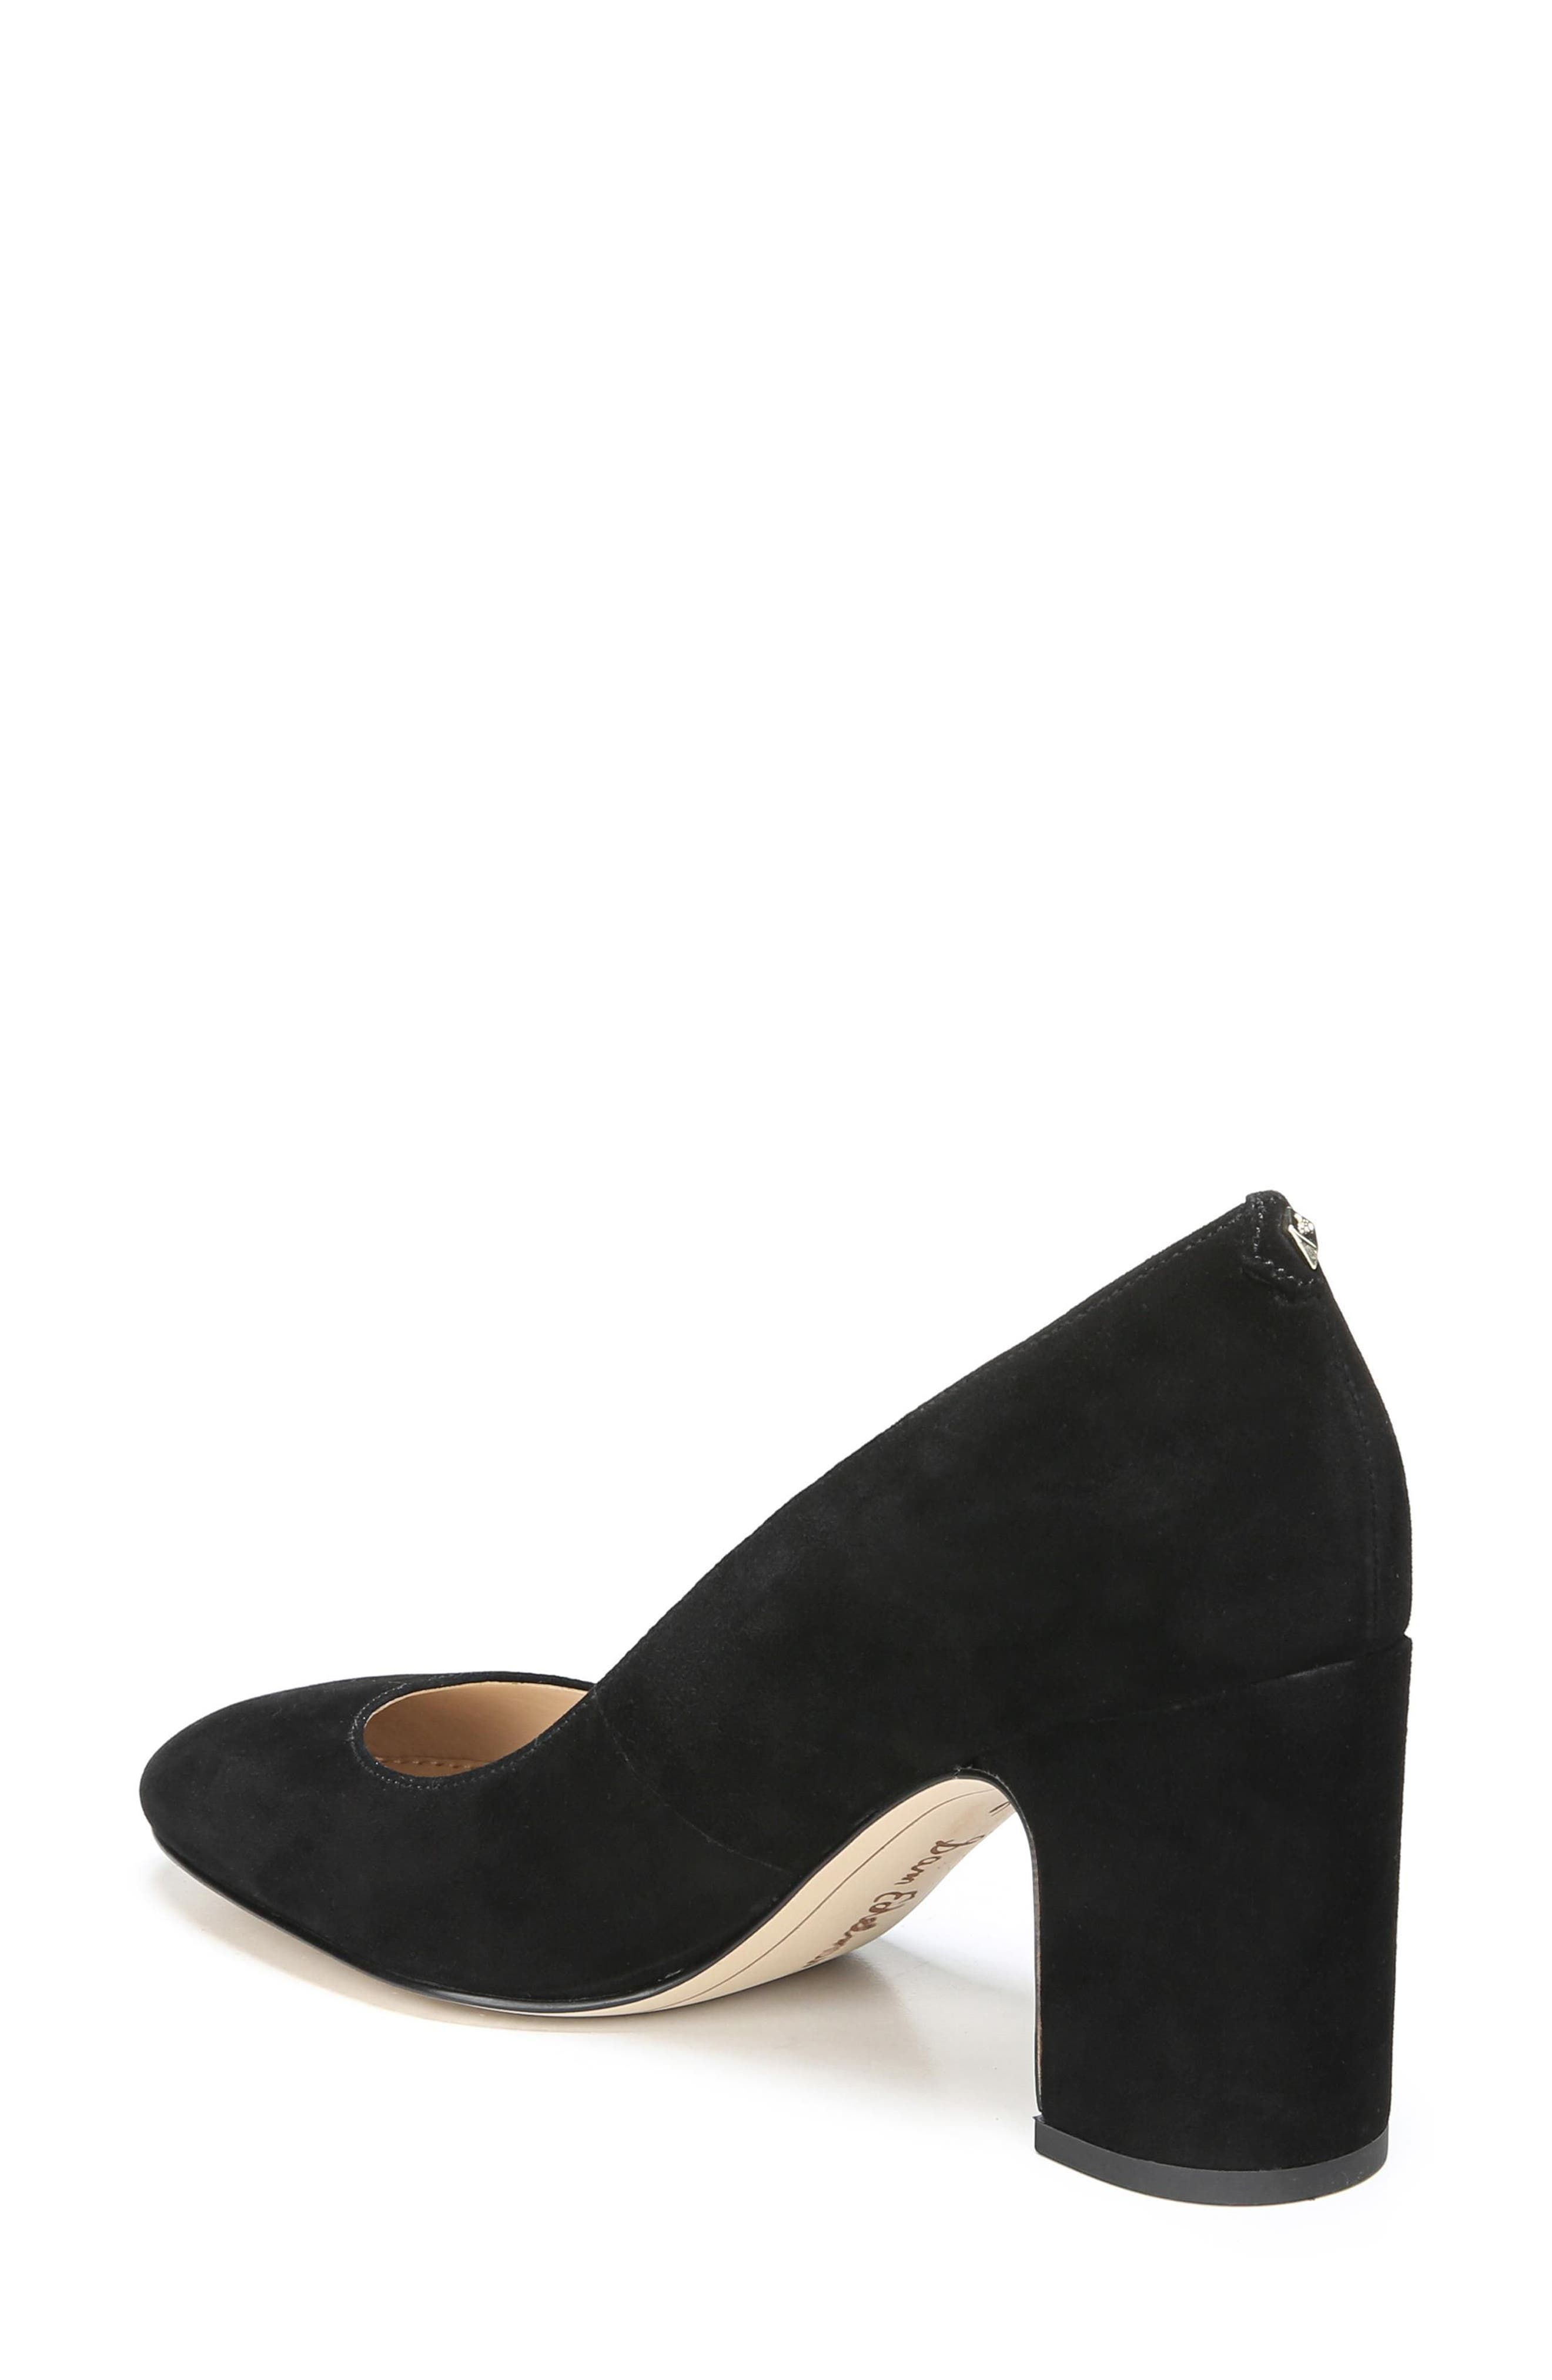 Junie Genuine Calf Hair Pump,                             Alternate thumbnail 2, color,                             001